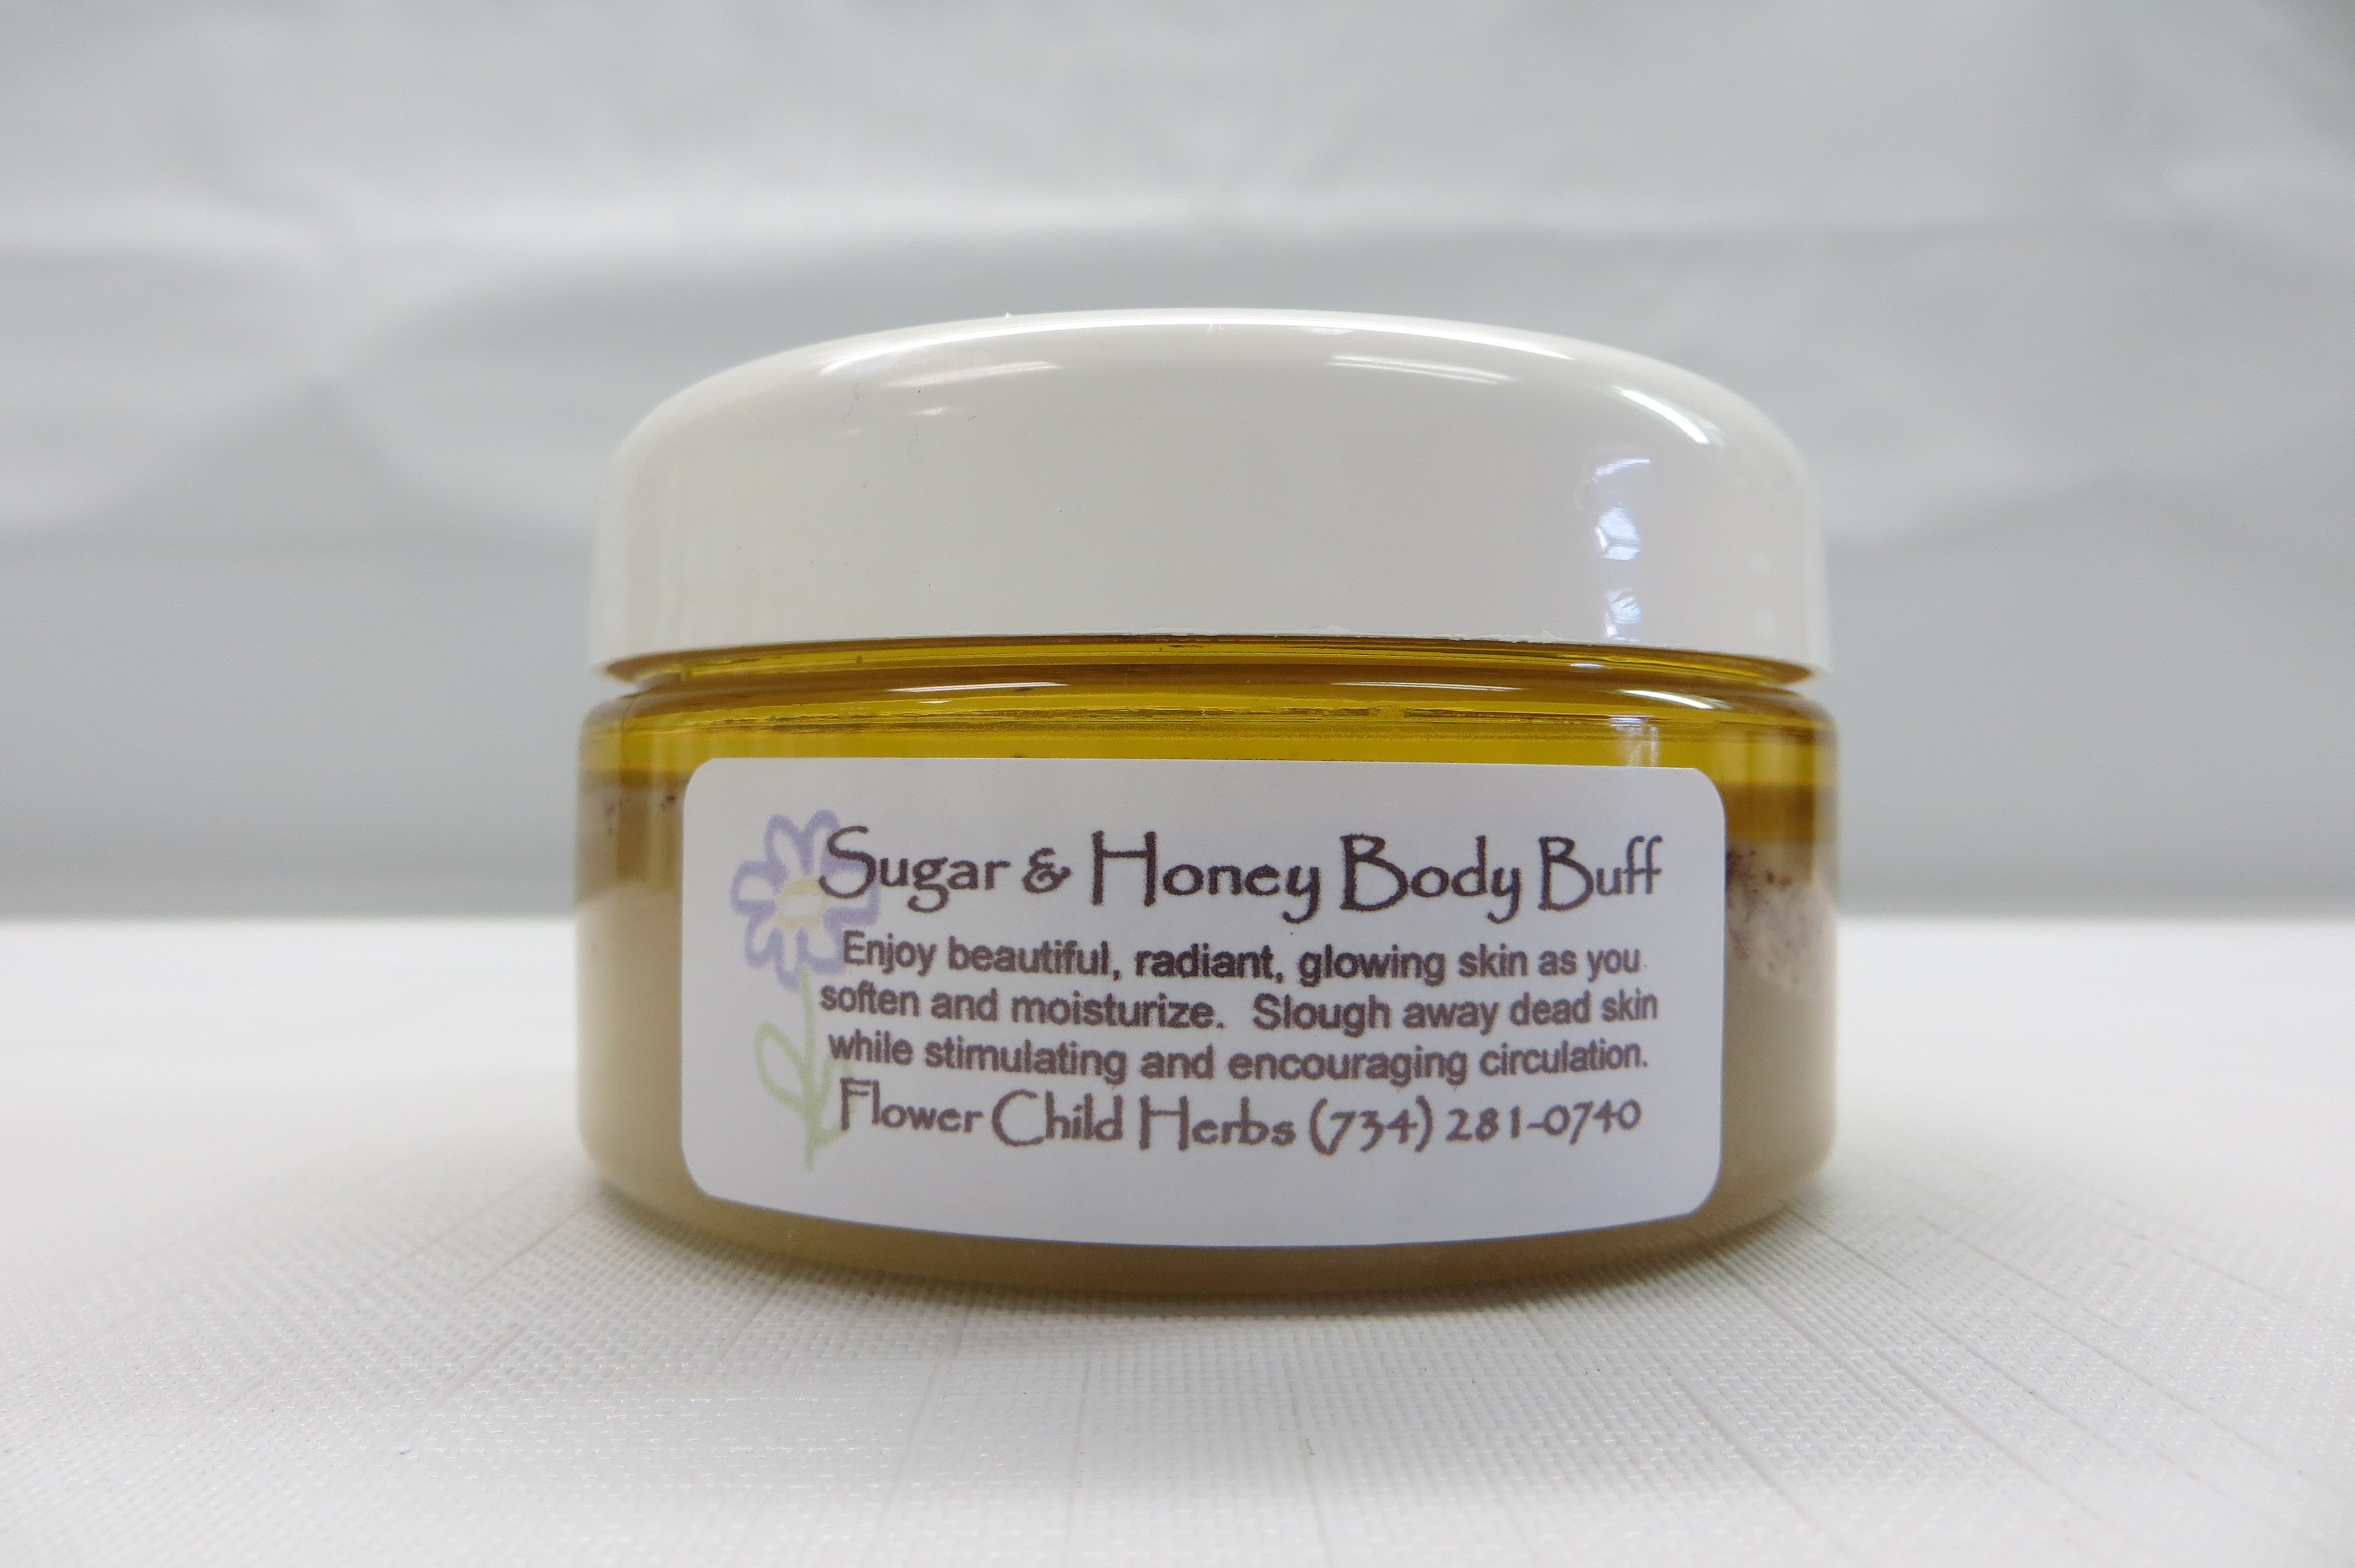 Tropical Twist Sugar and Honey Body Buff